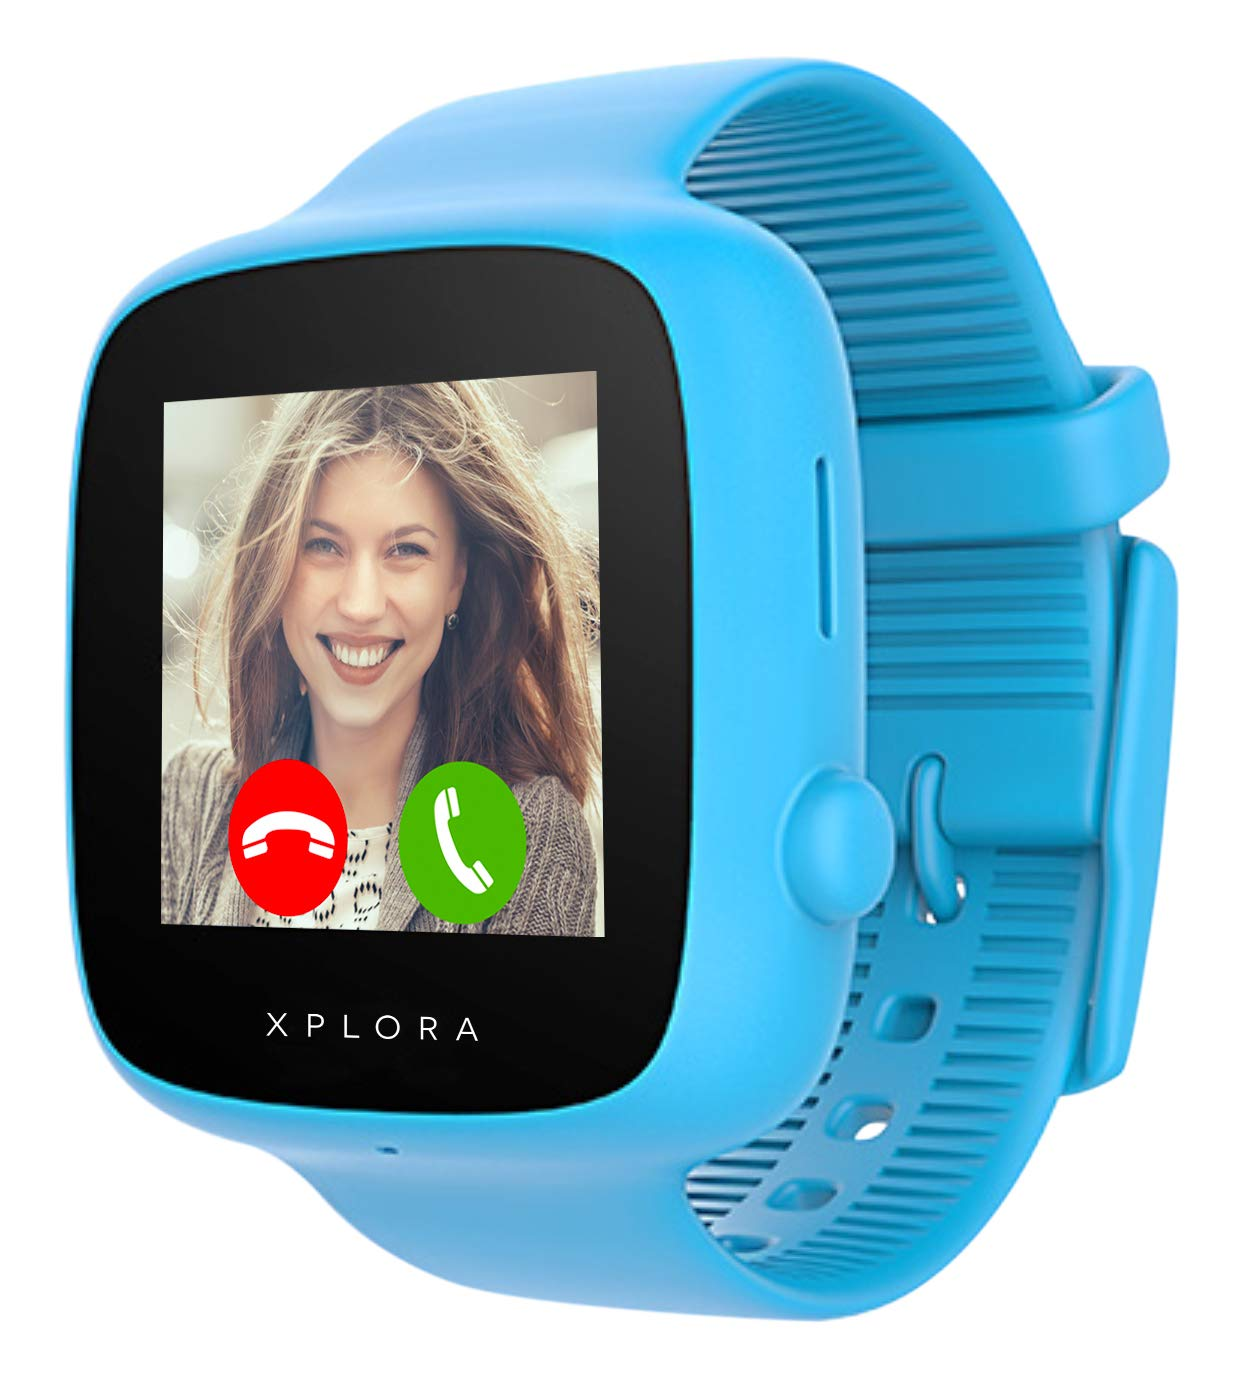 XPLORA GO - Watch Phone for children (SIM Free) - Calls, Messages, Kids School Mode, SOS function, GPS Location, Camera and Pedometer - Includes 2 Year Warranty (BLUE)